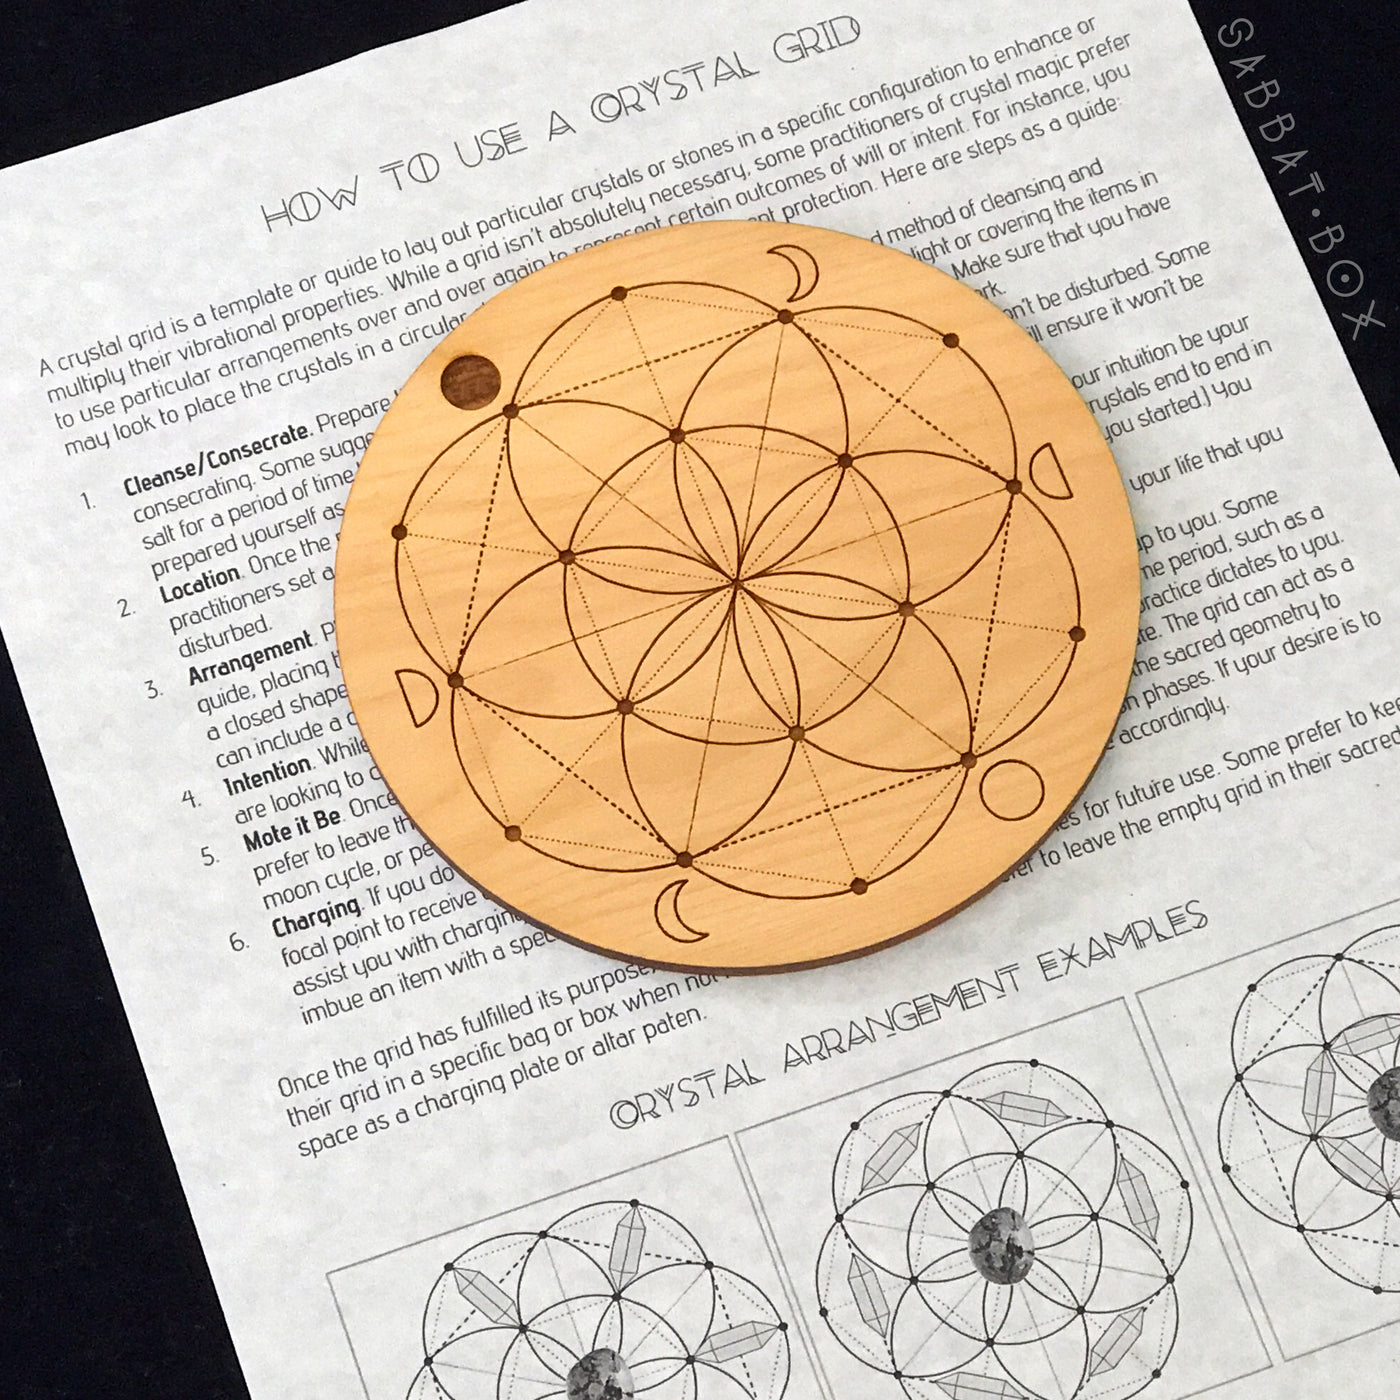 Wooden seed of life crystal grid wmoon phases sabbat box wooden seed of life crystal grid with moon phases and instructions sciox Image collections